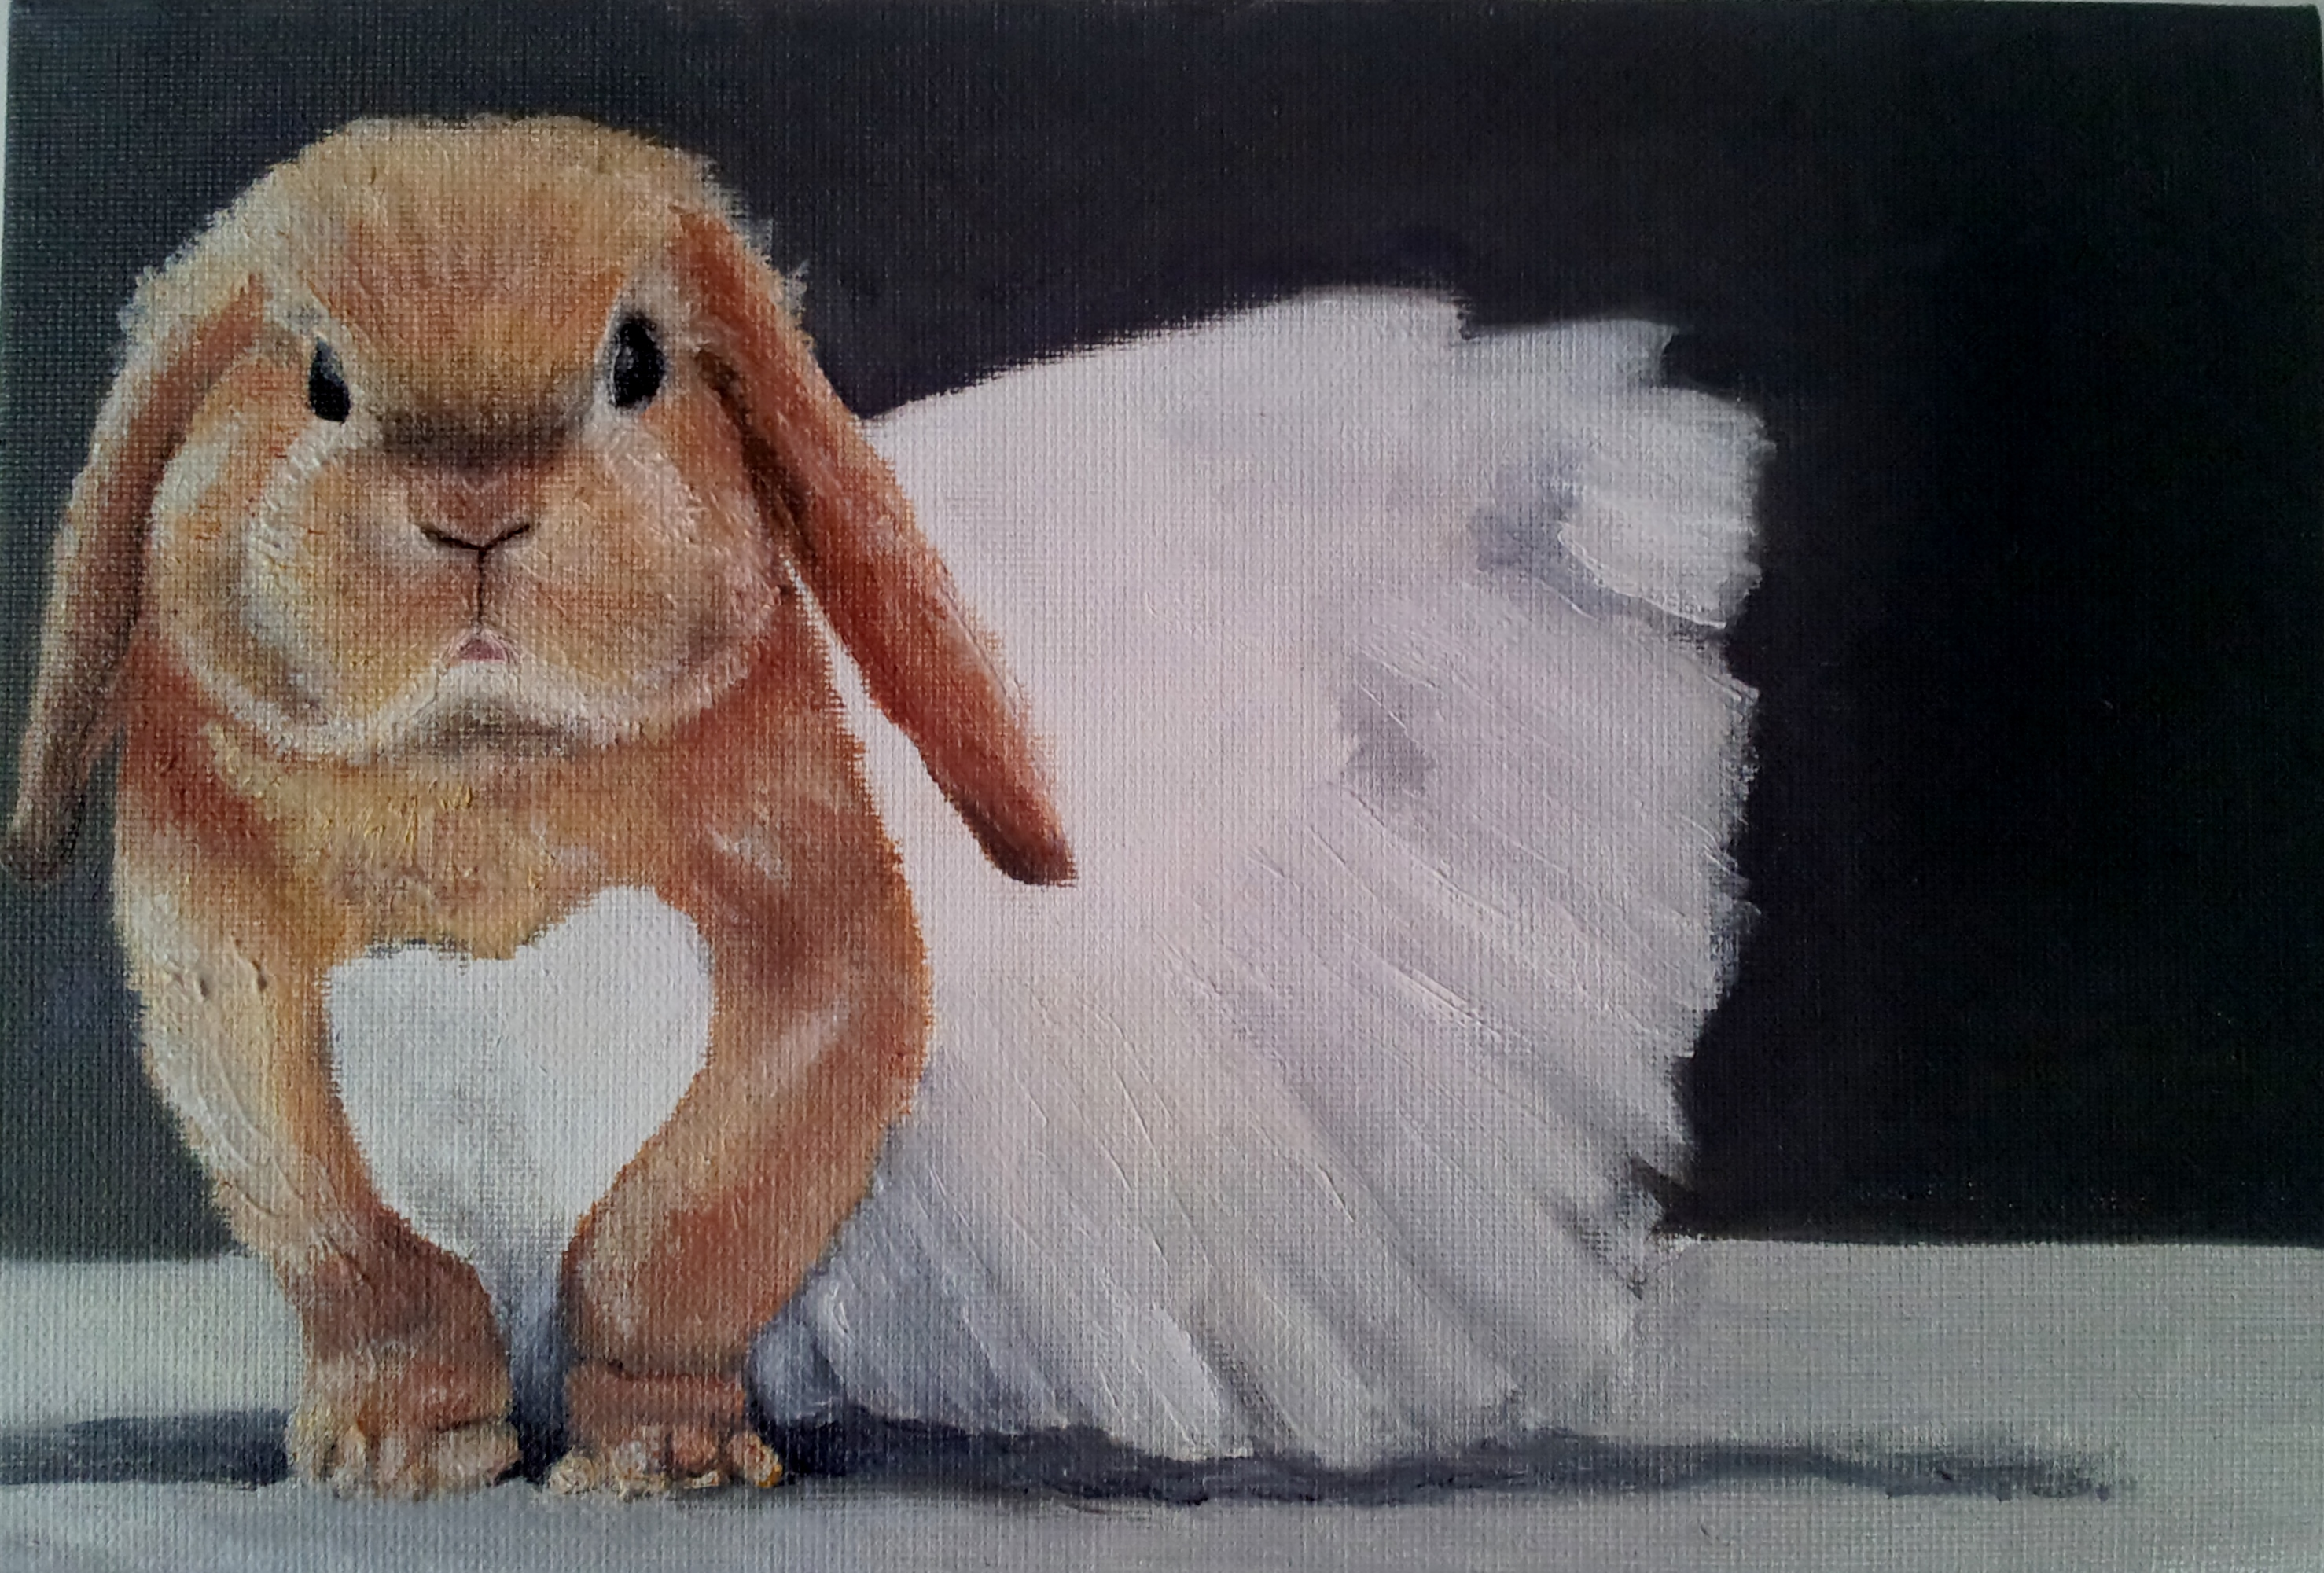 weddding rabbit.jpg